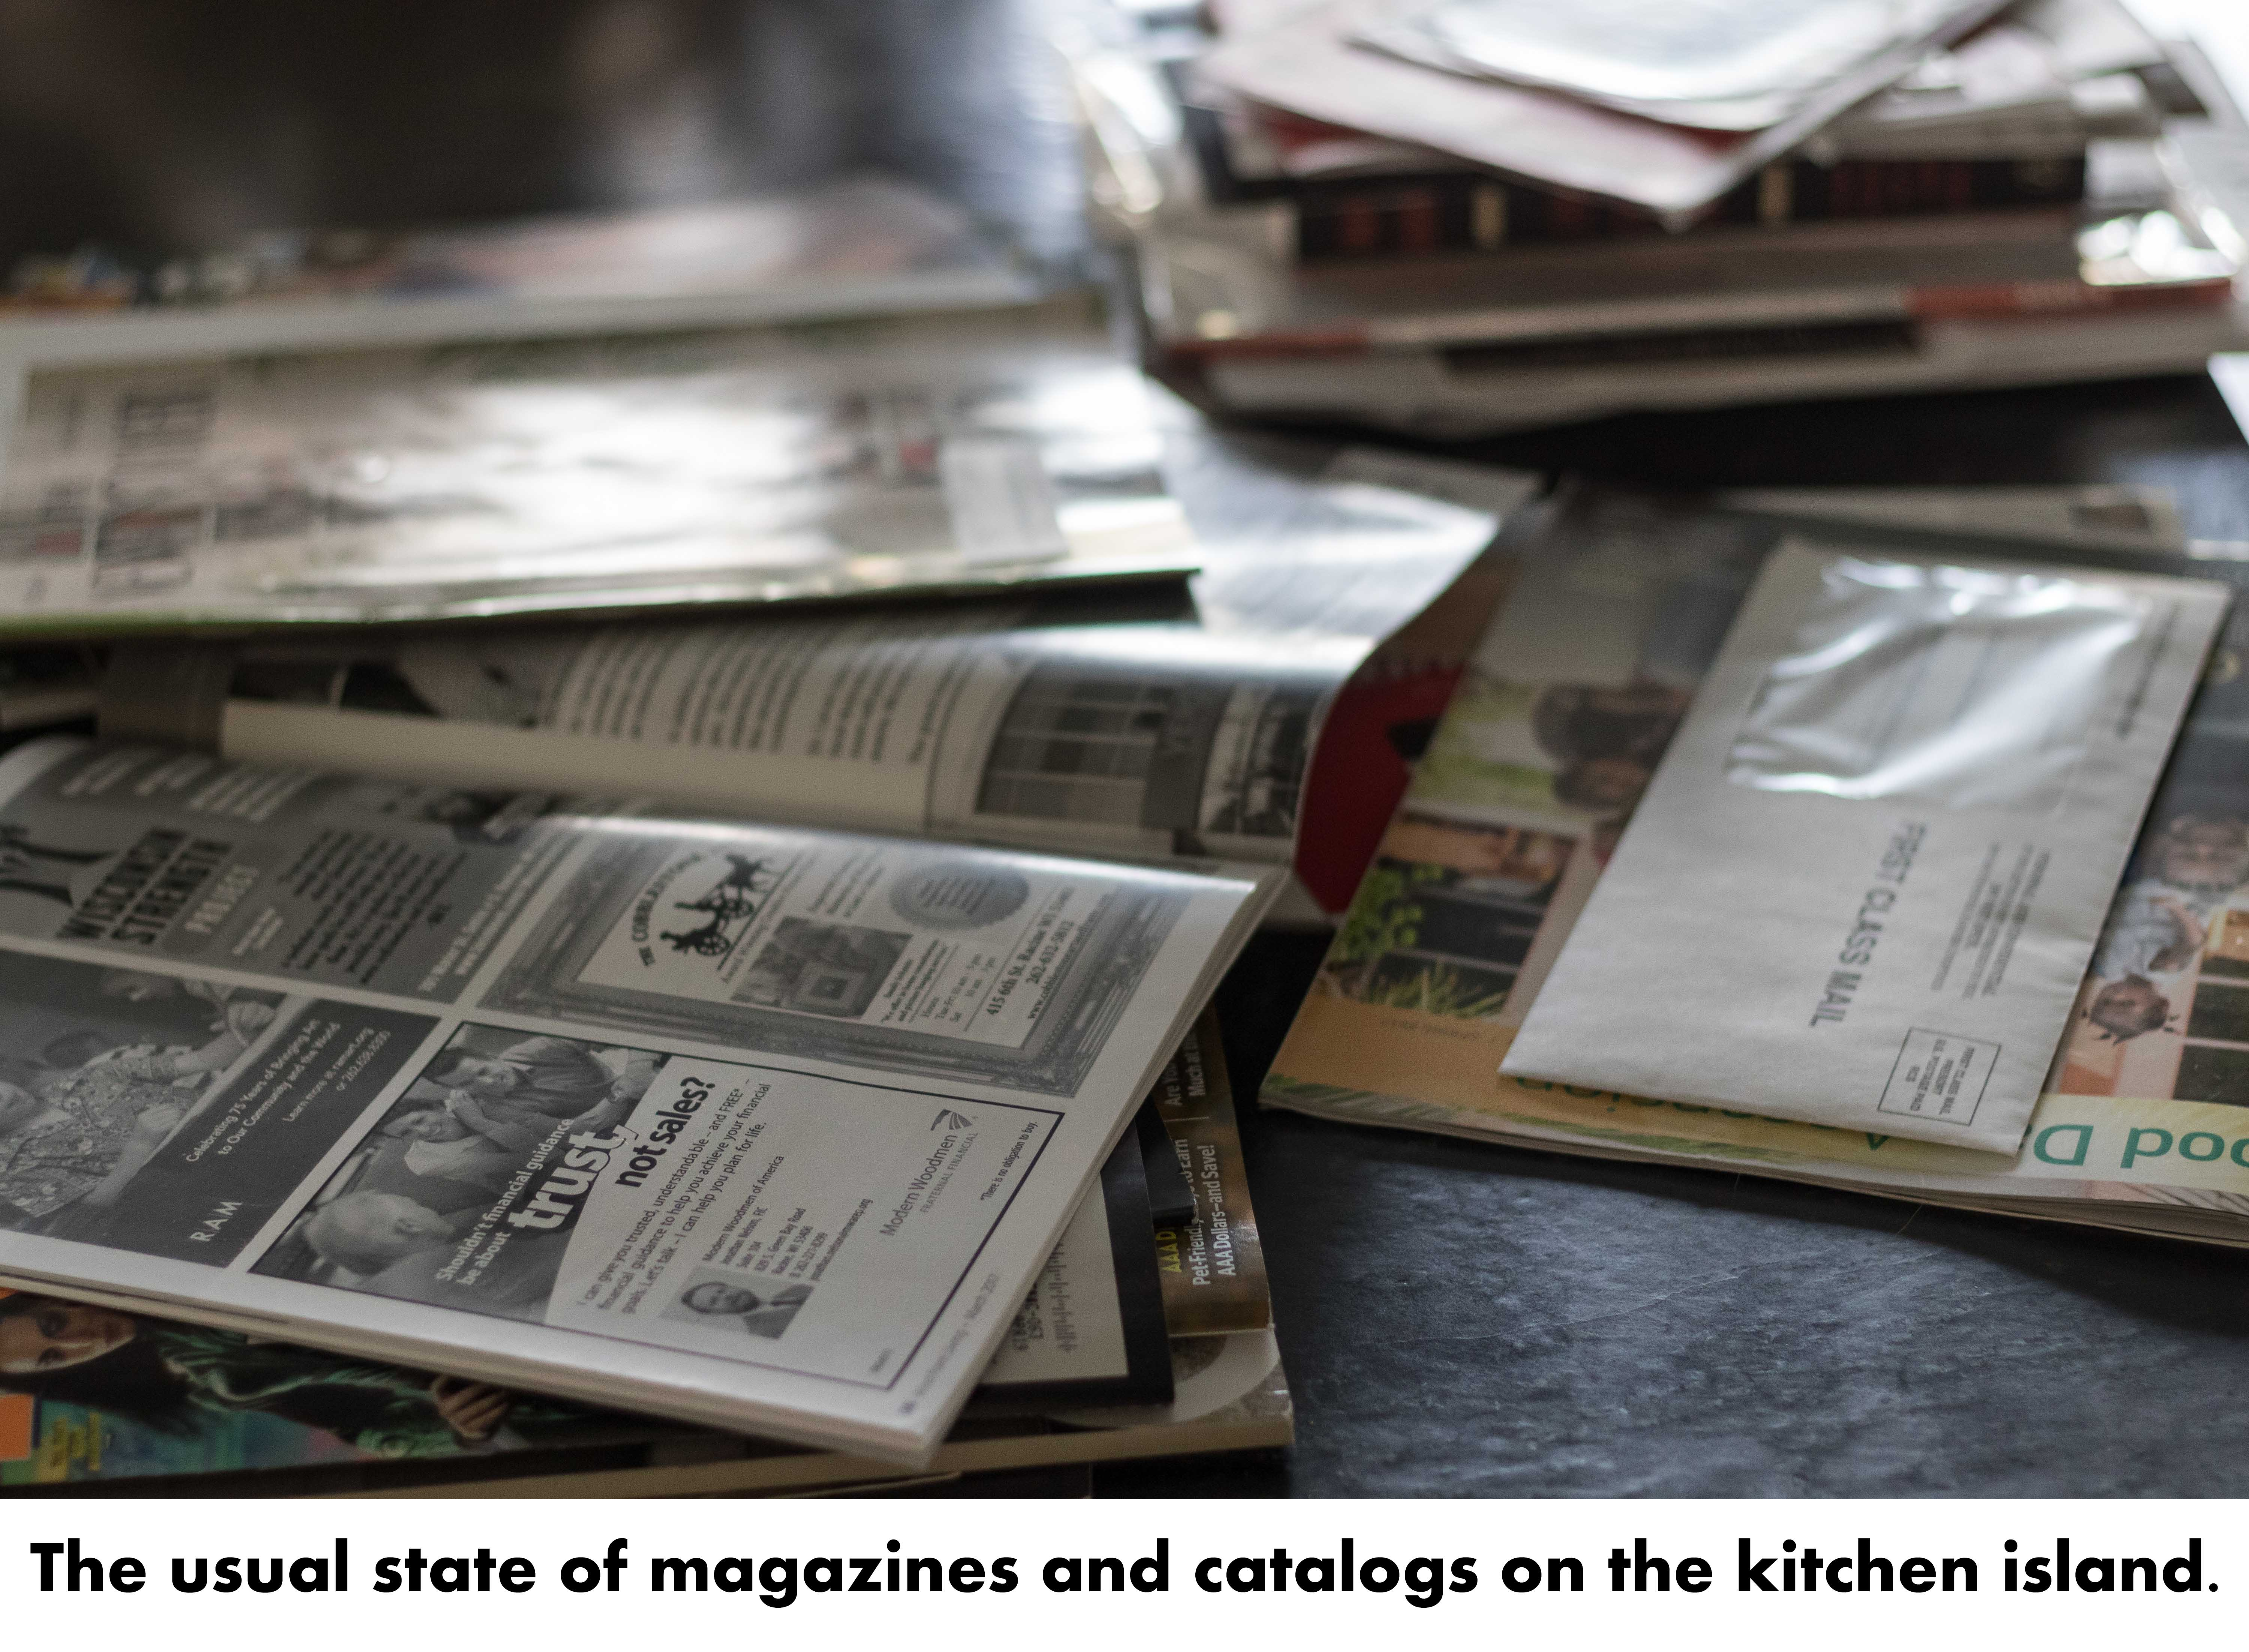 Cluttered Magazines and Catalogs